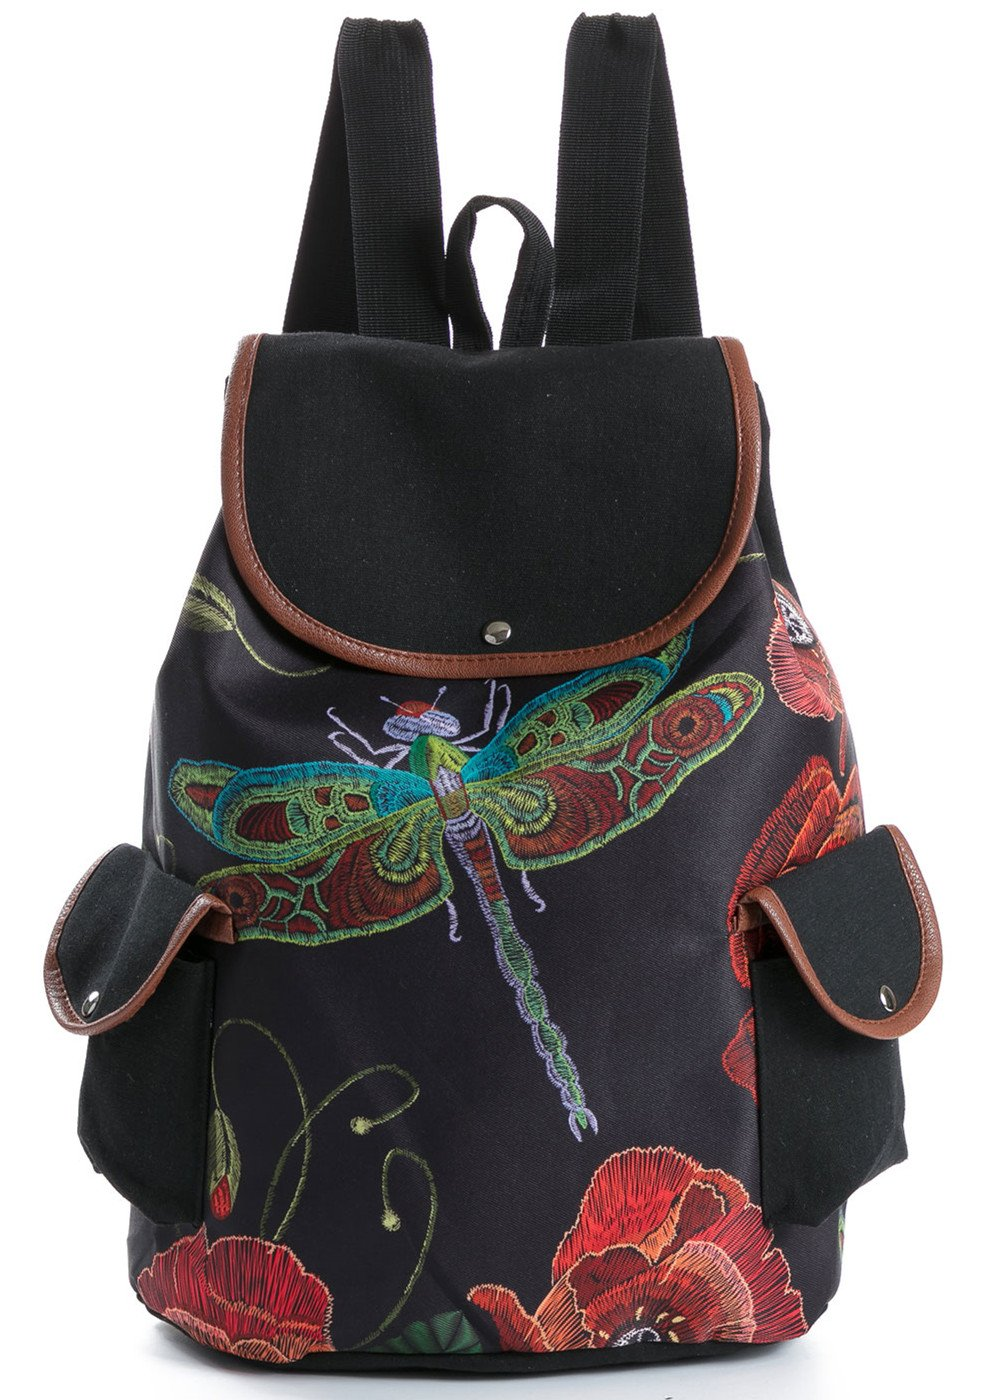 744c2b41c8d3 KIDVOVOU Canvas Backpack for Young Girls Women Backpack Flower Print  Rucksack